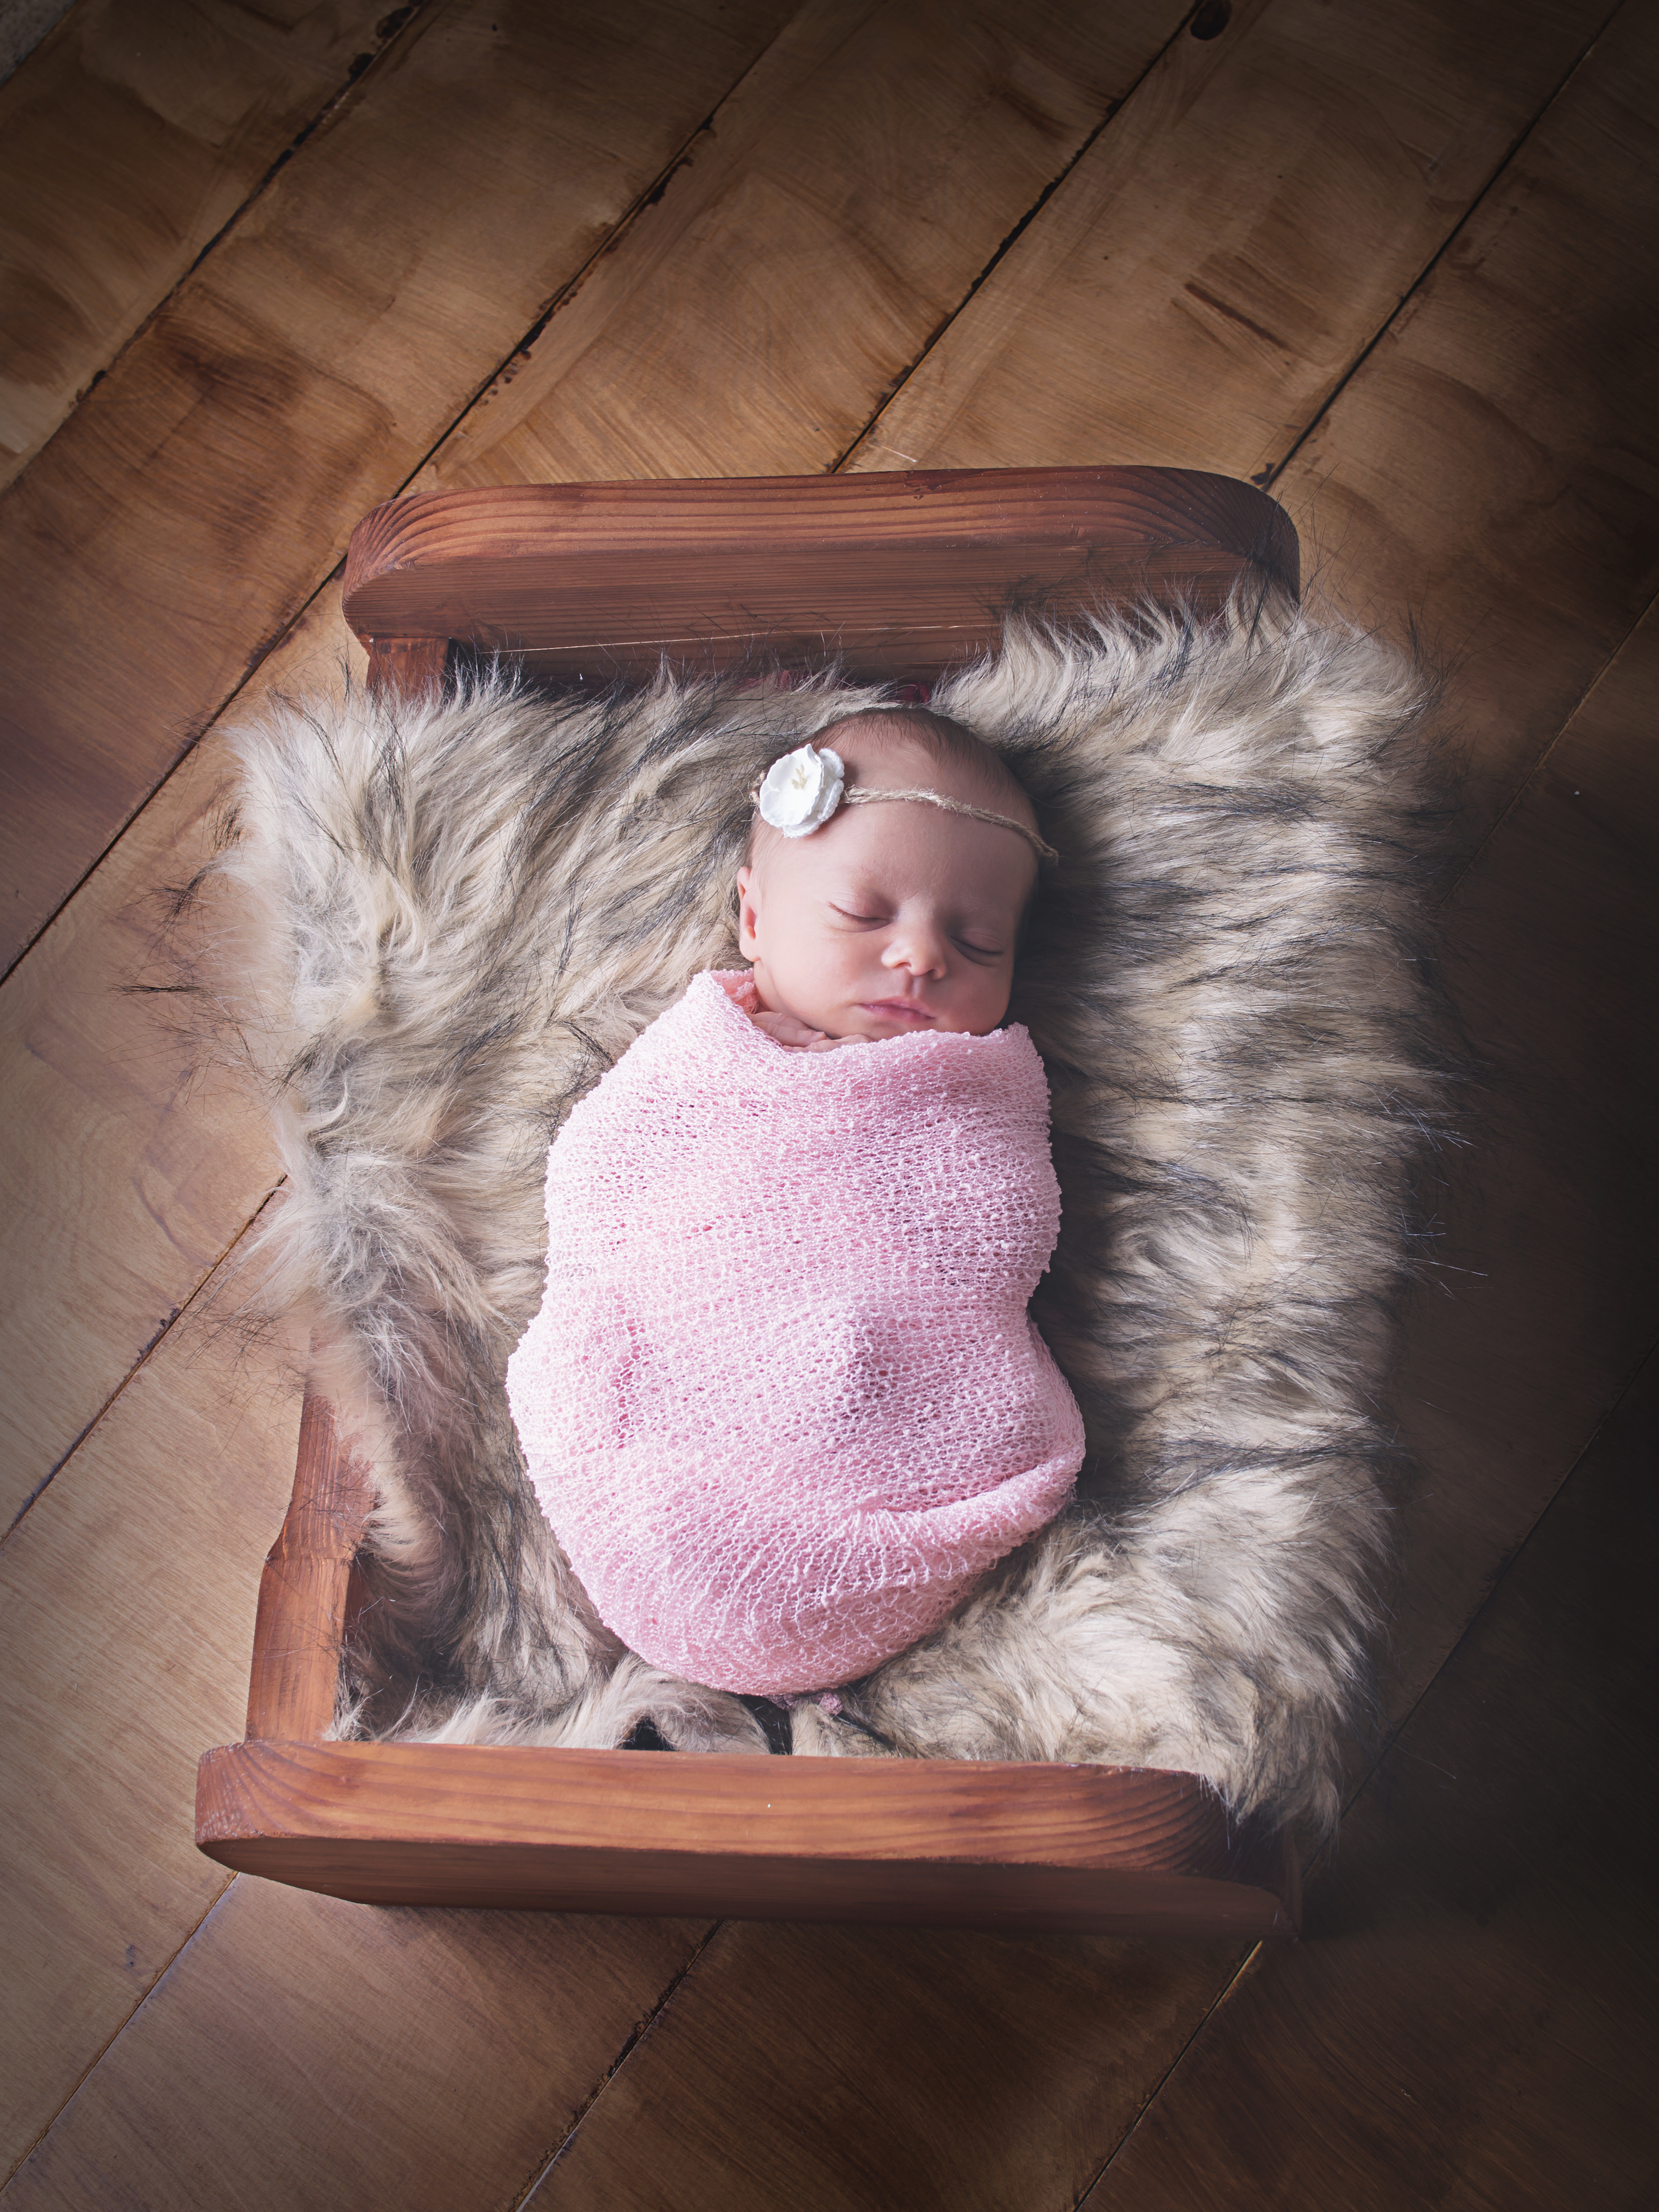 Newborn baby in little wooden bed